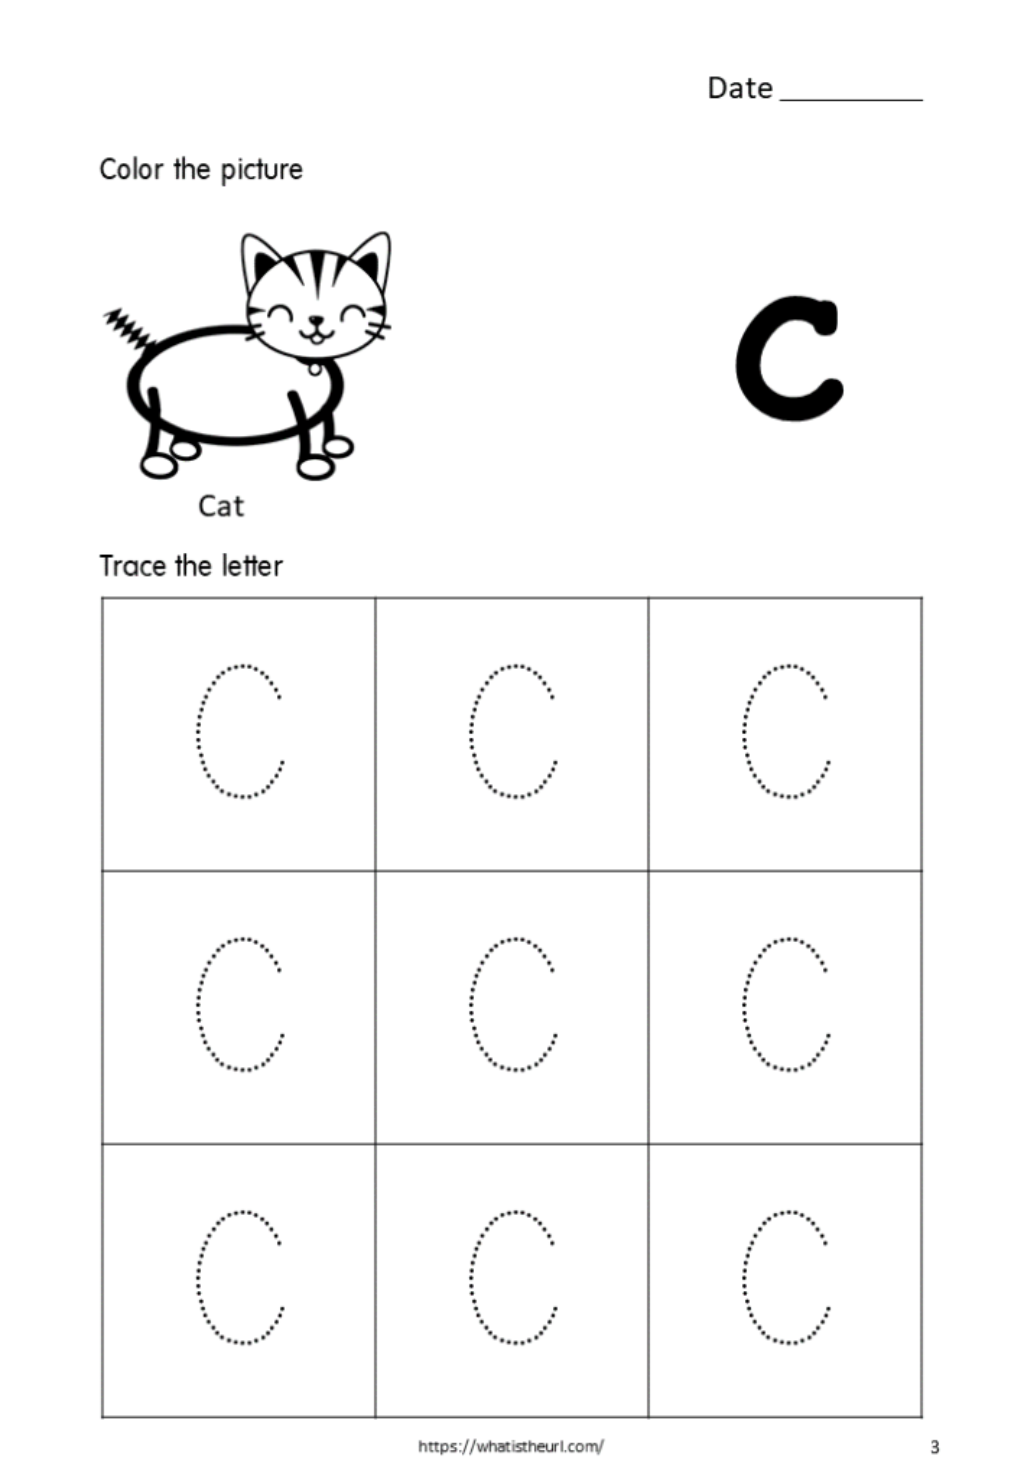 Tracing-Alphabet-Capital-Letter-C-For-Kids - Your Home Teacher within C Letter Tracing